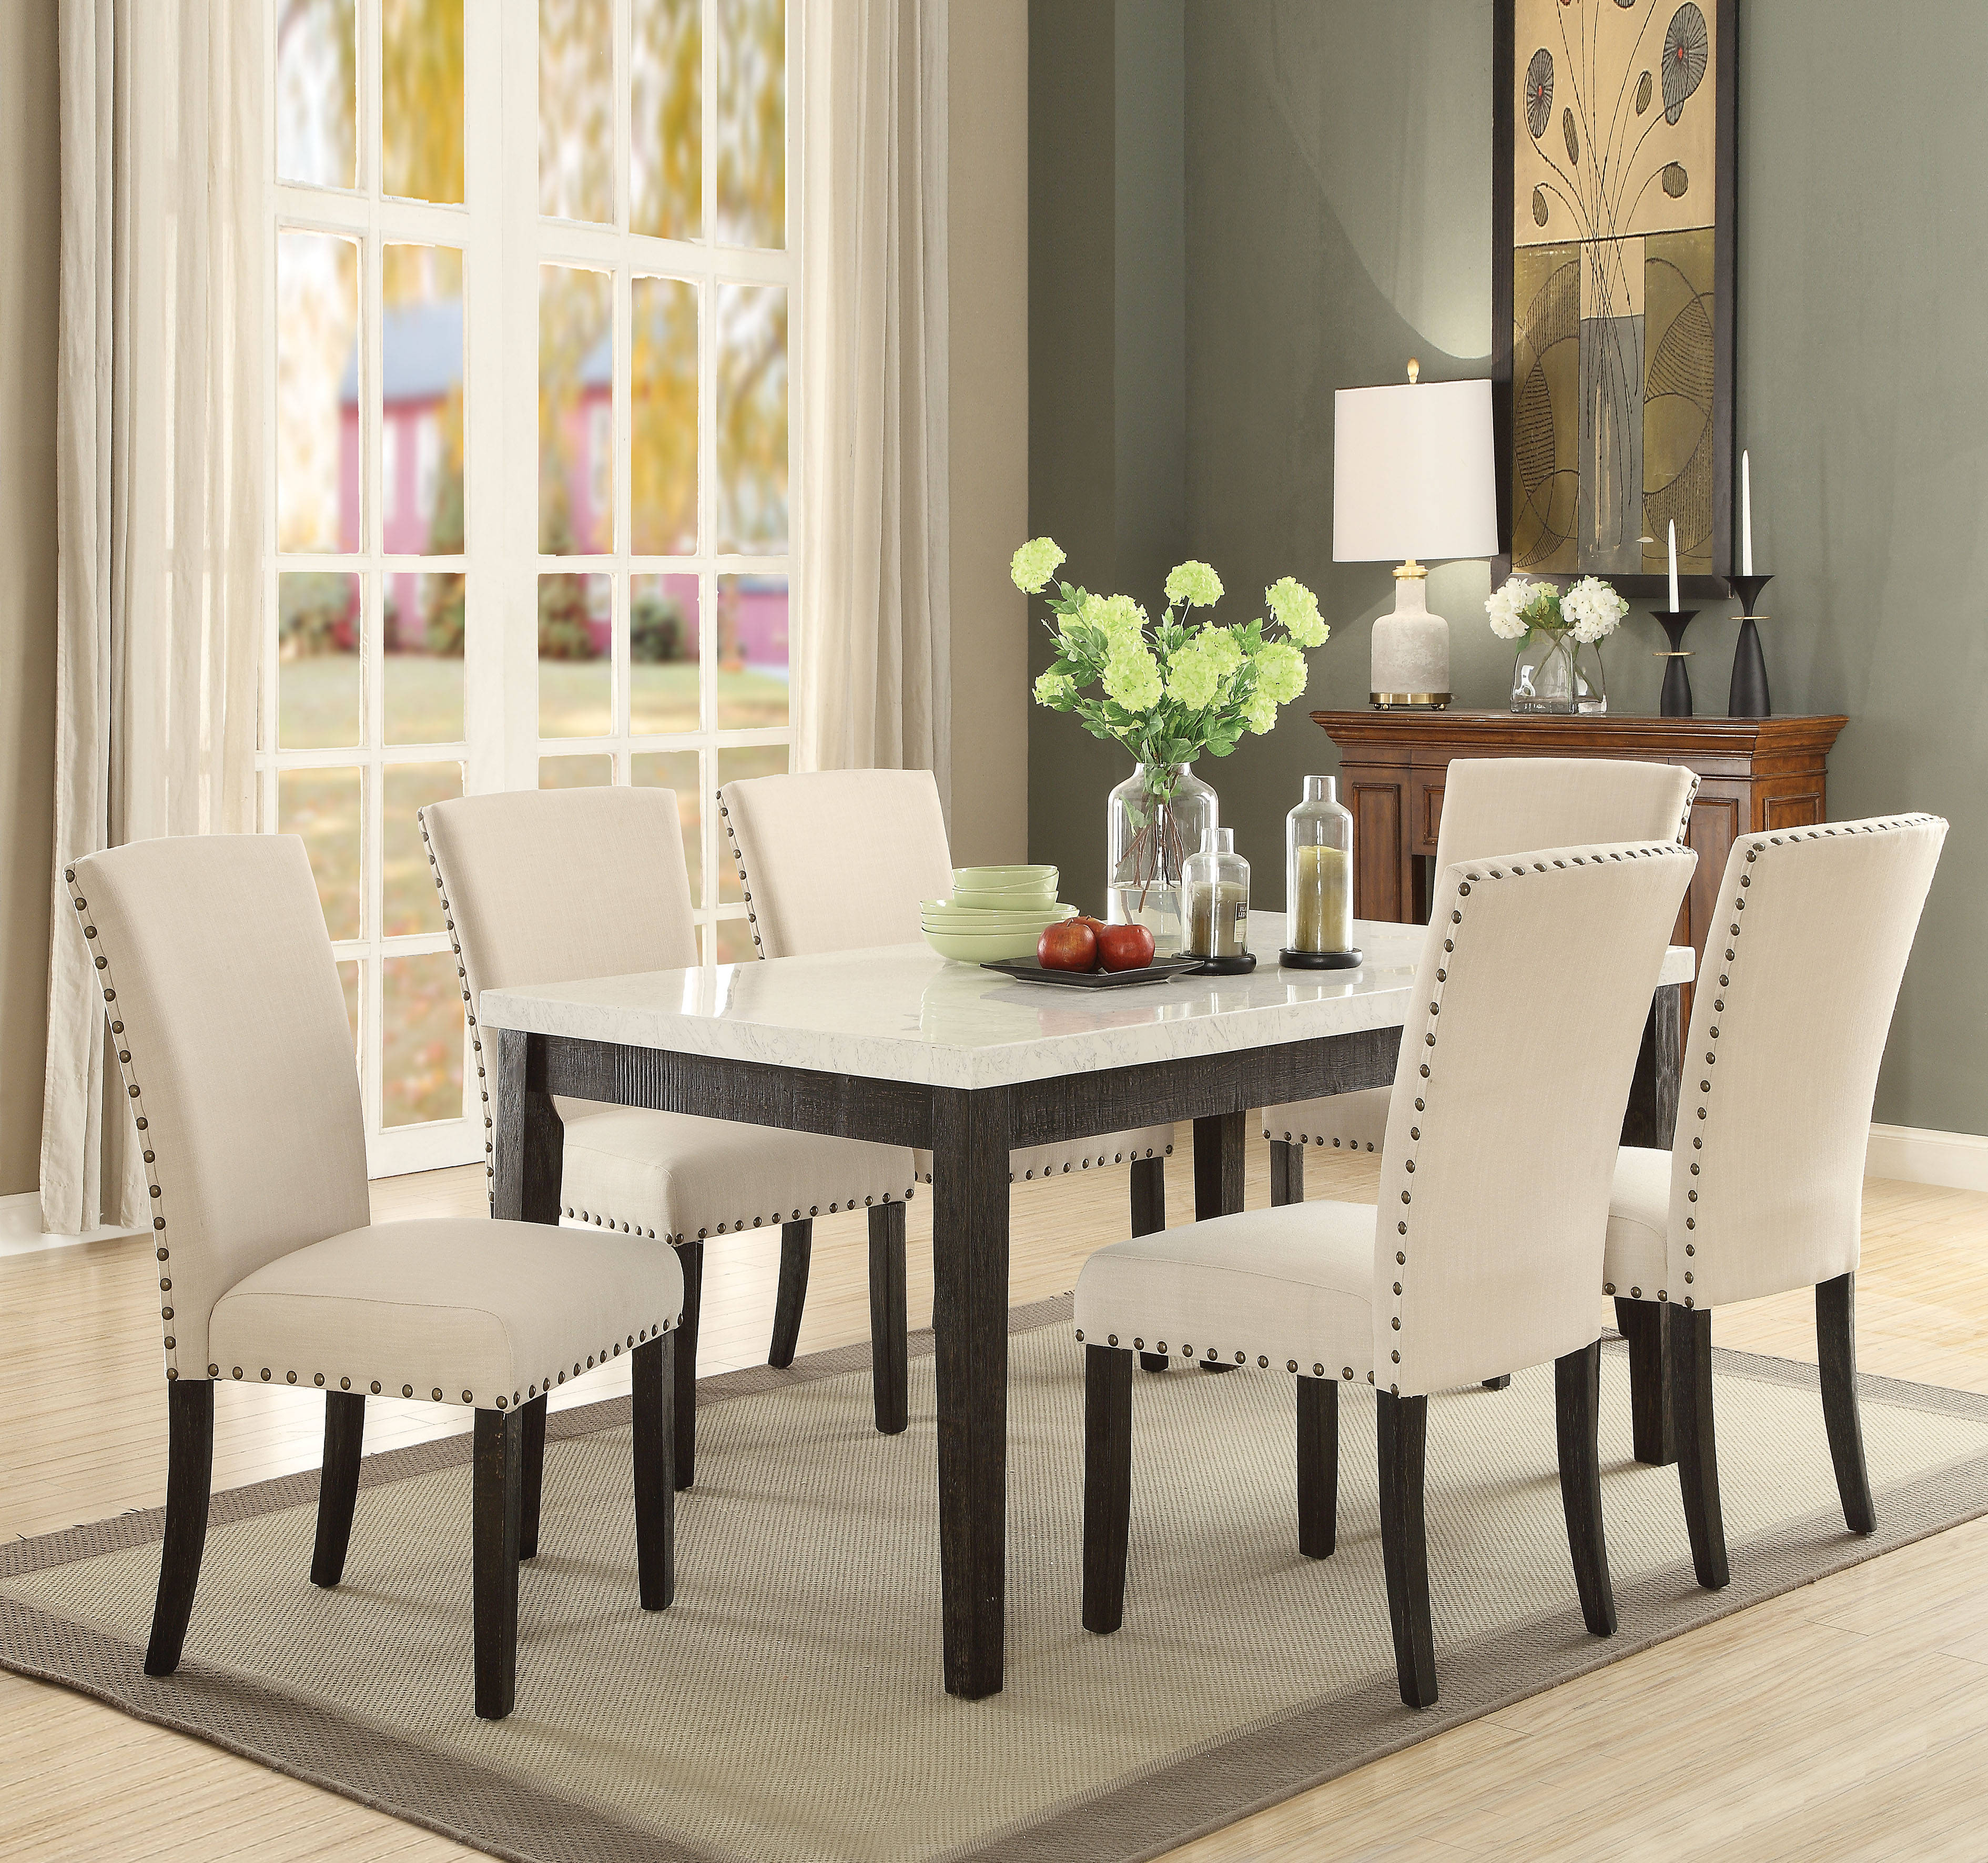 Acme Furniture Nolan 7pc Dining Room Set | The Classy Home